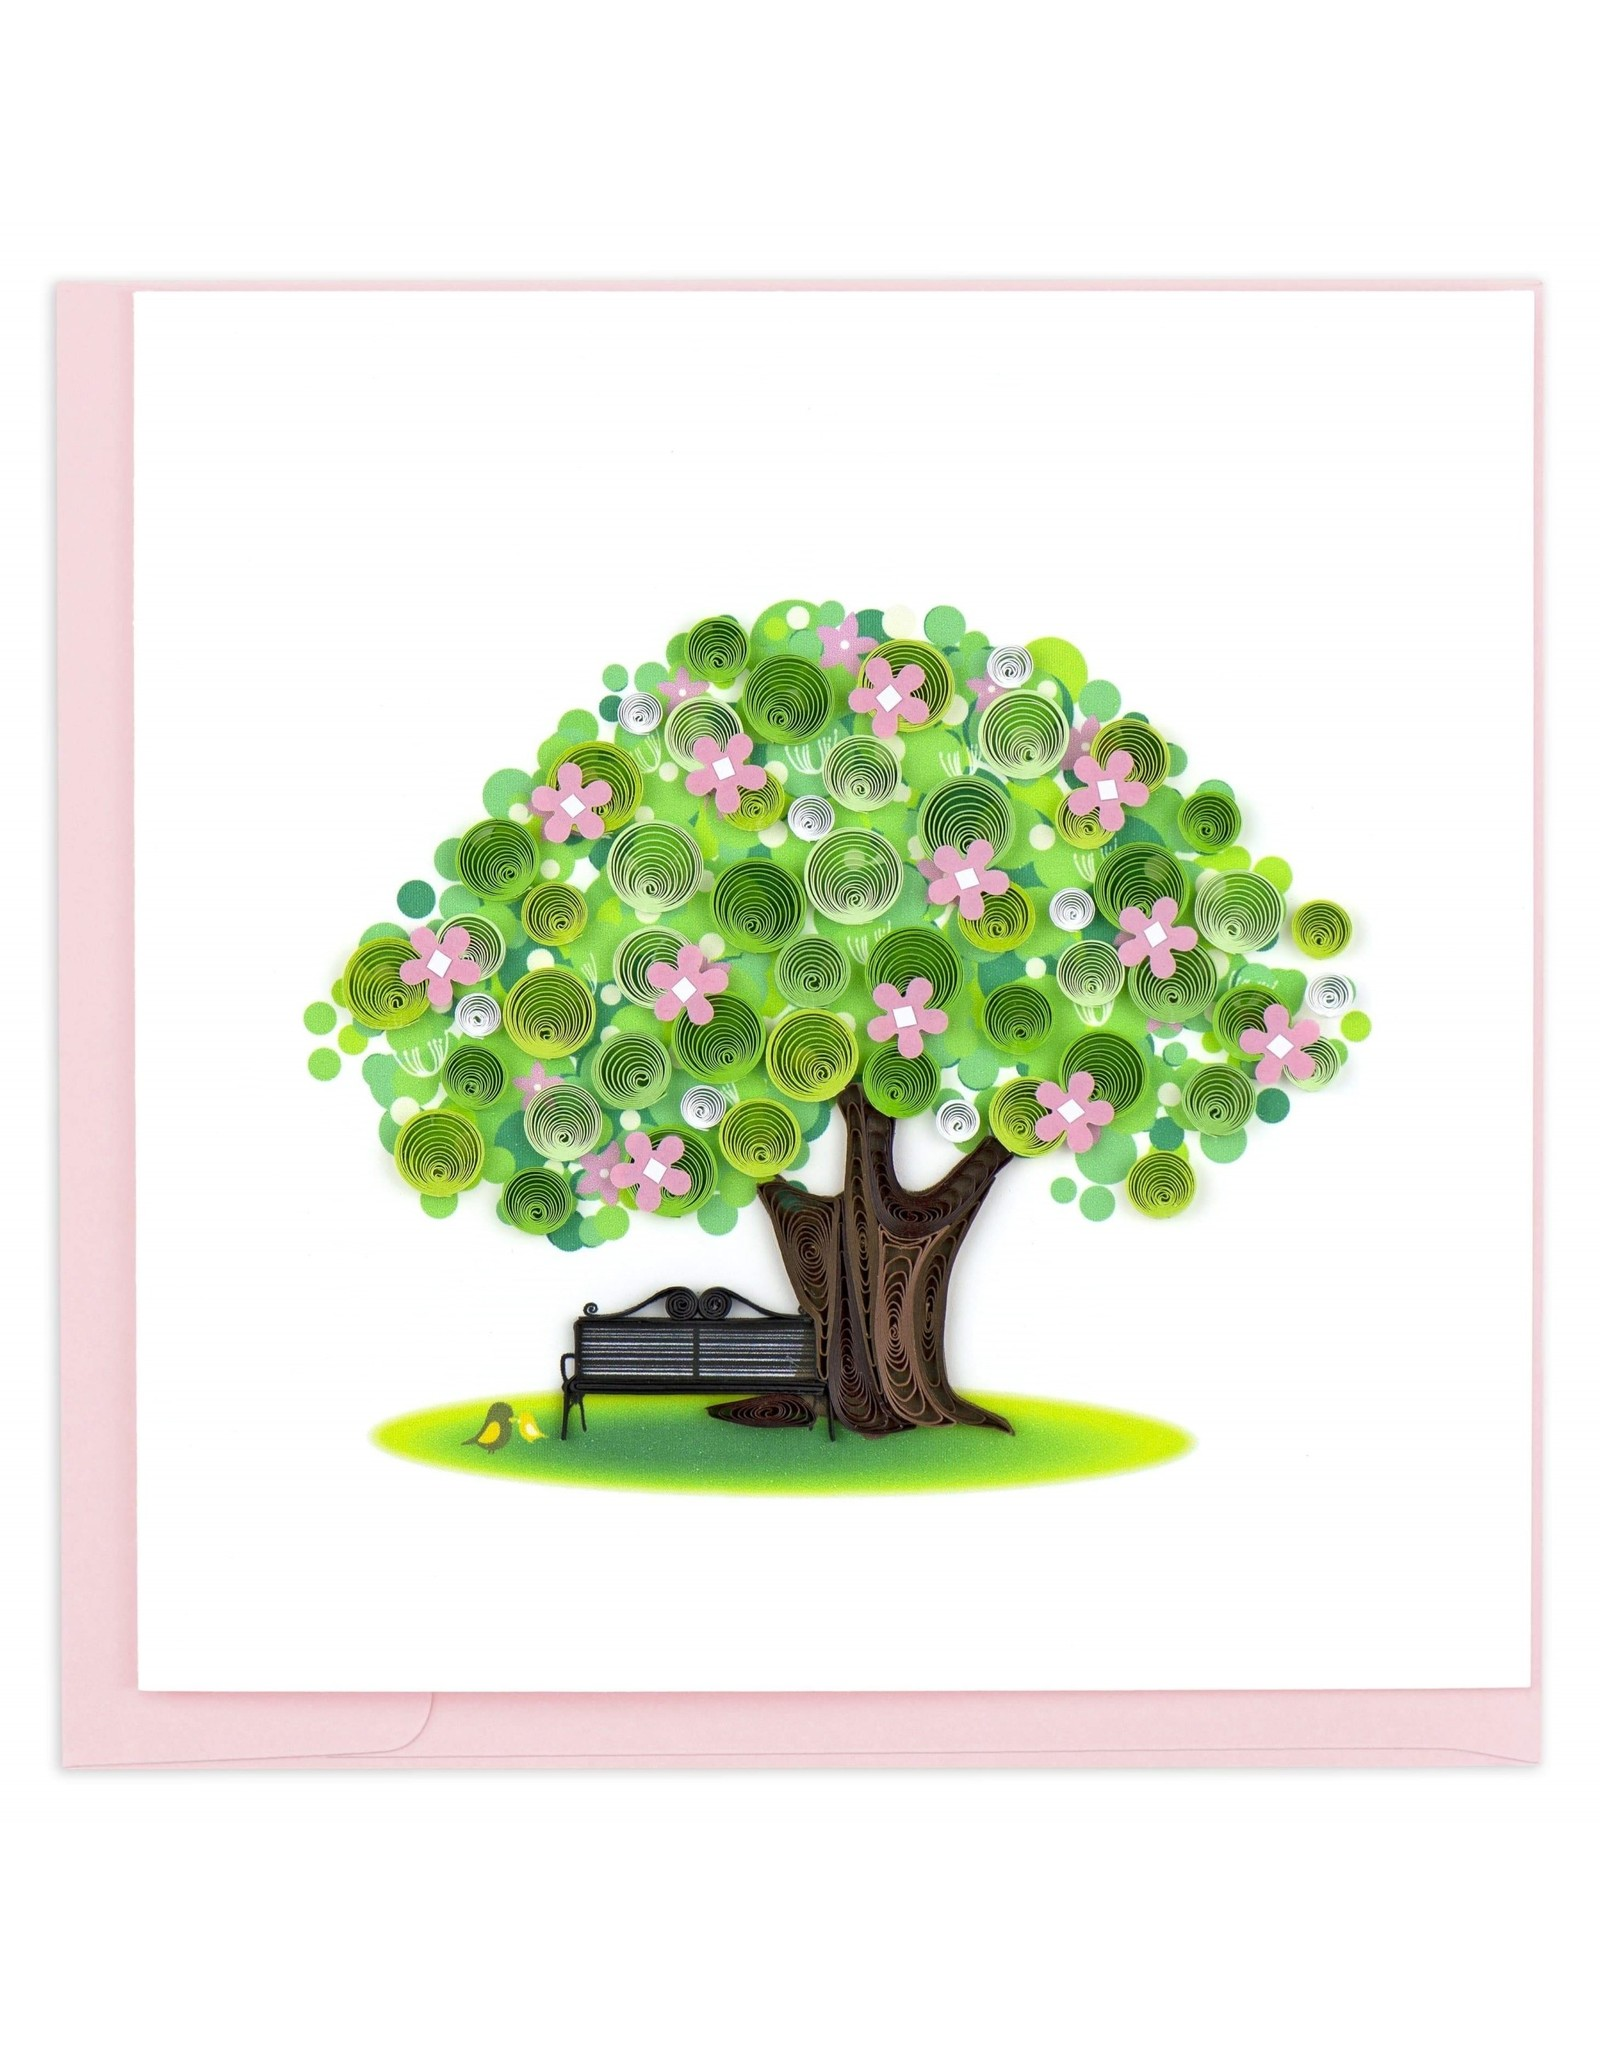 quillingcard Quilled Spring Tree Card, Vietnam